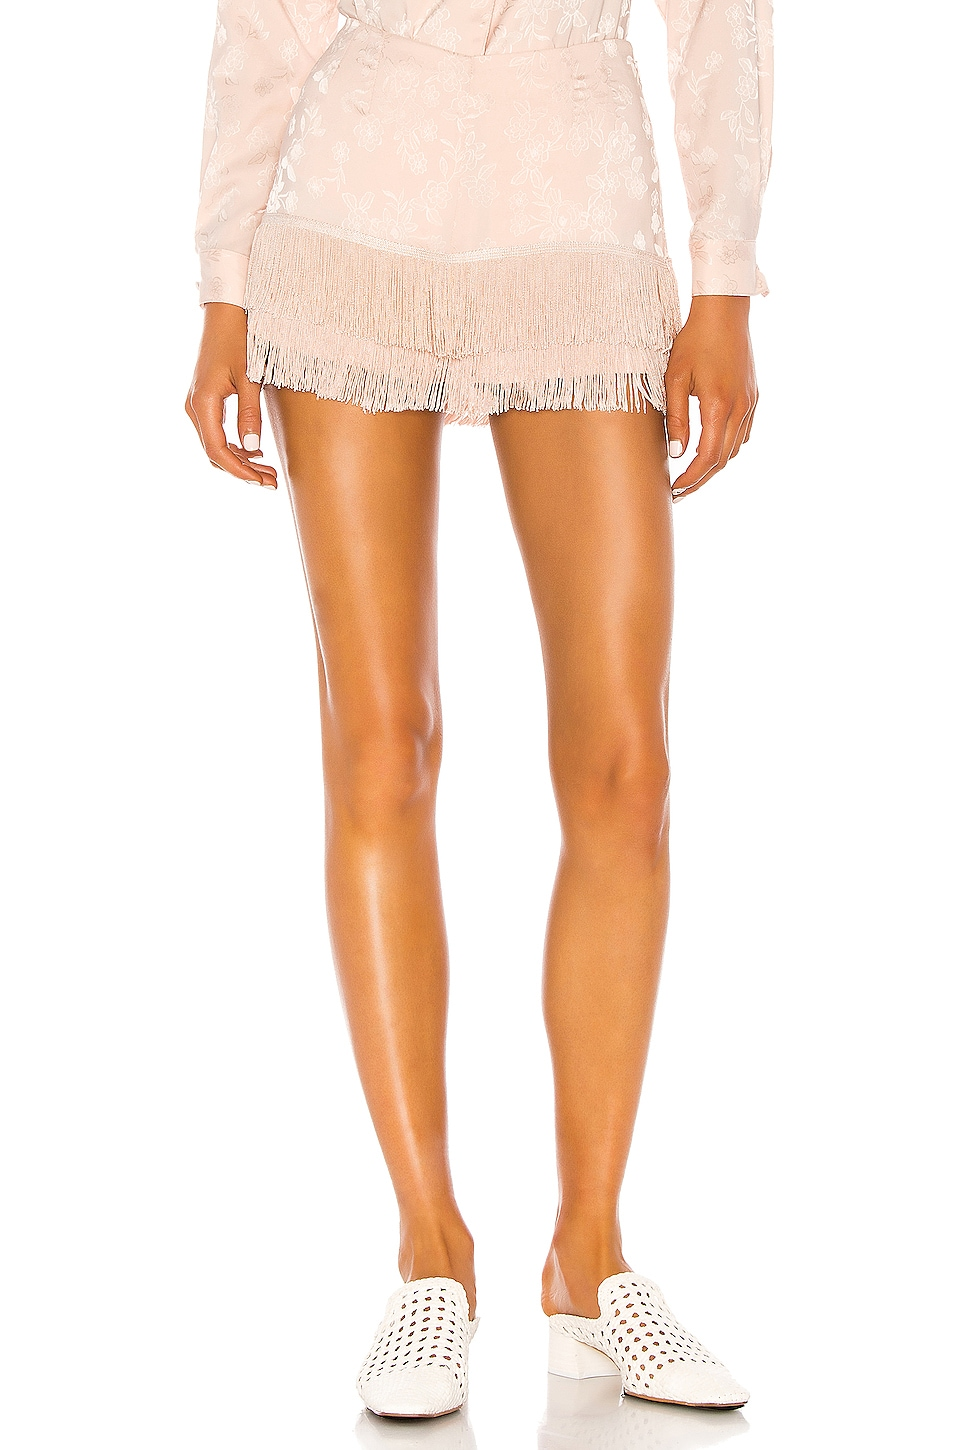 LPA Ines Short in Blush